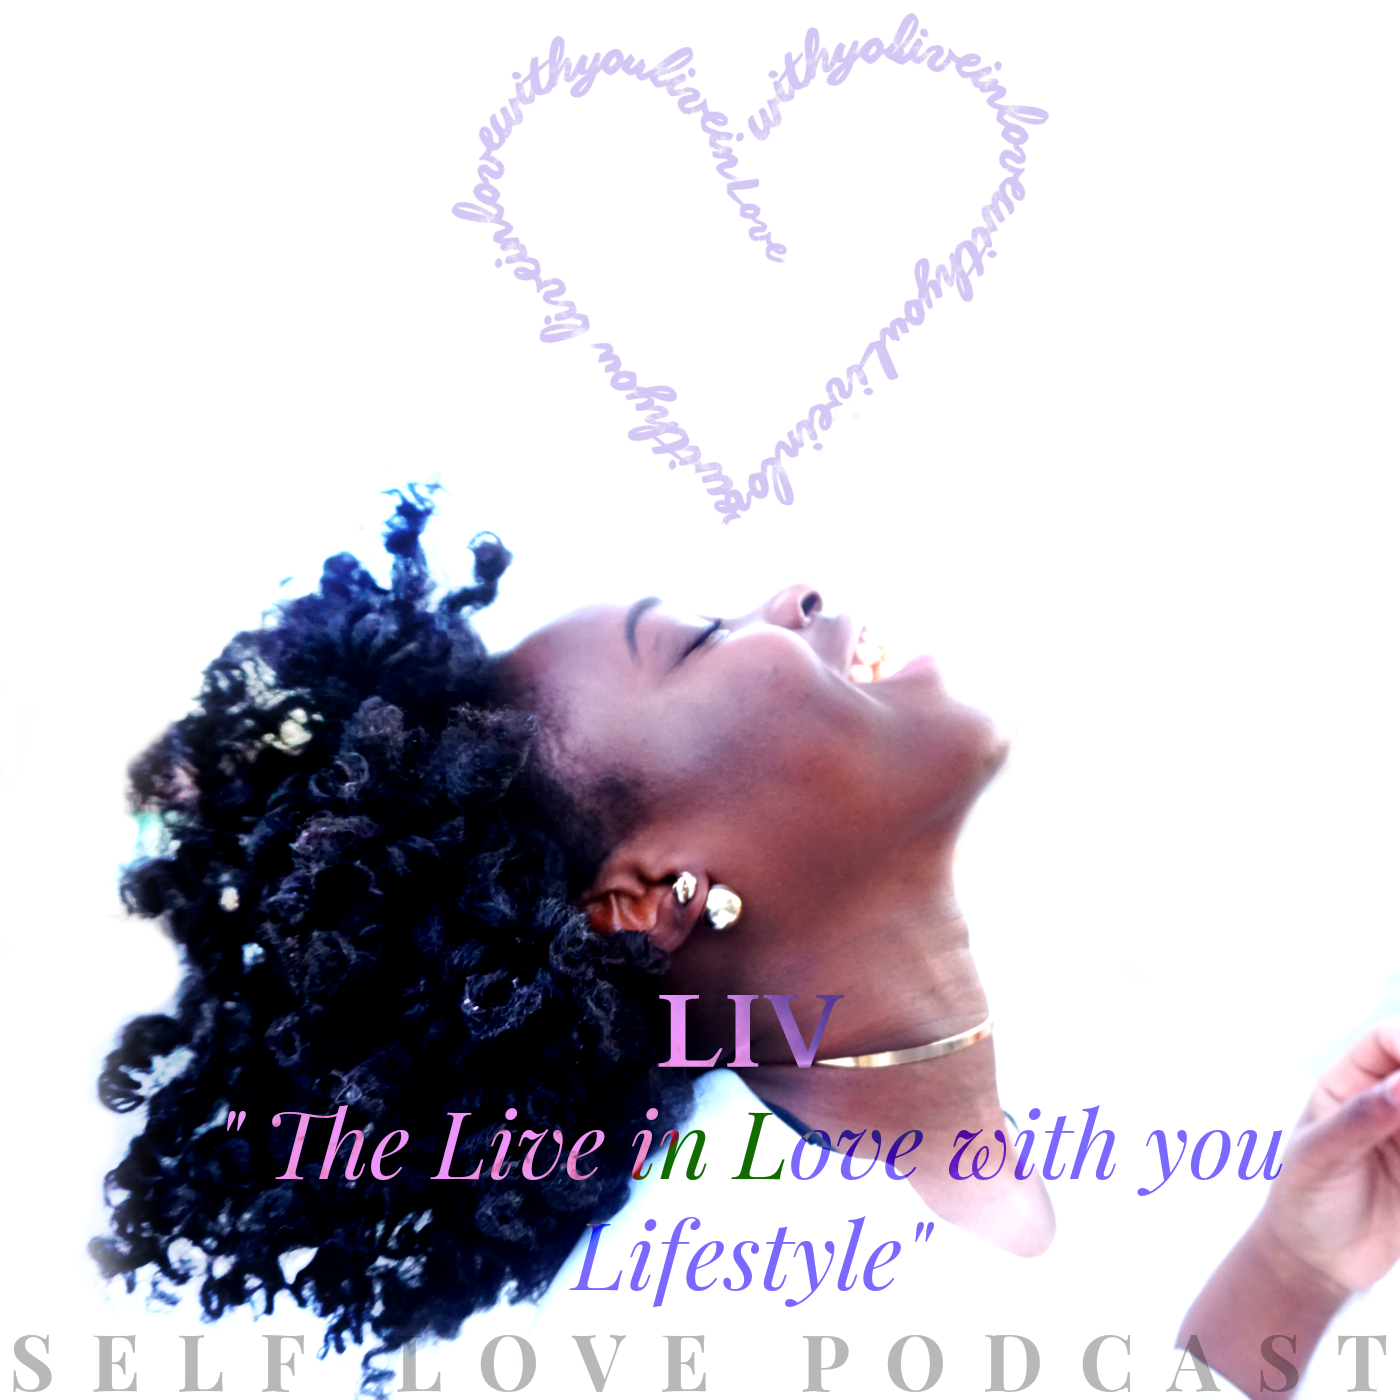 The self love podcast